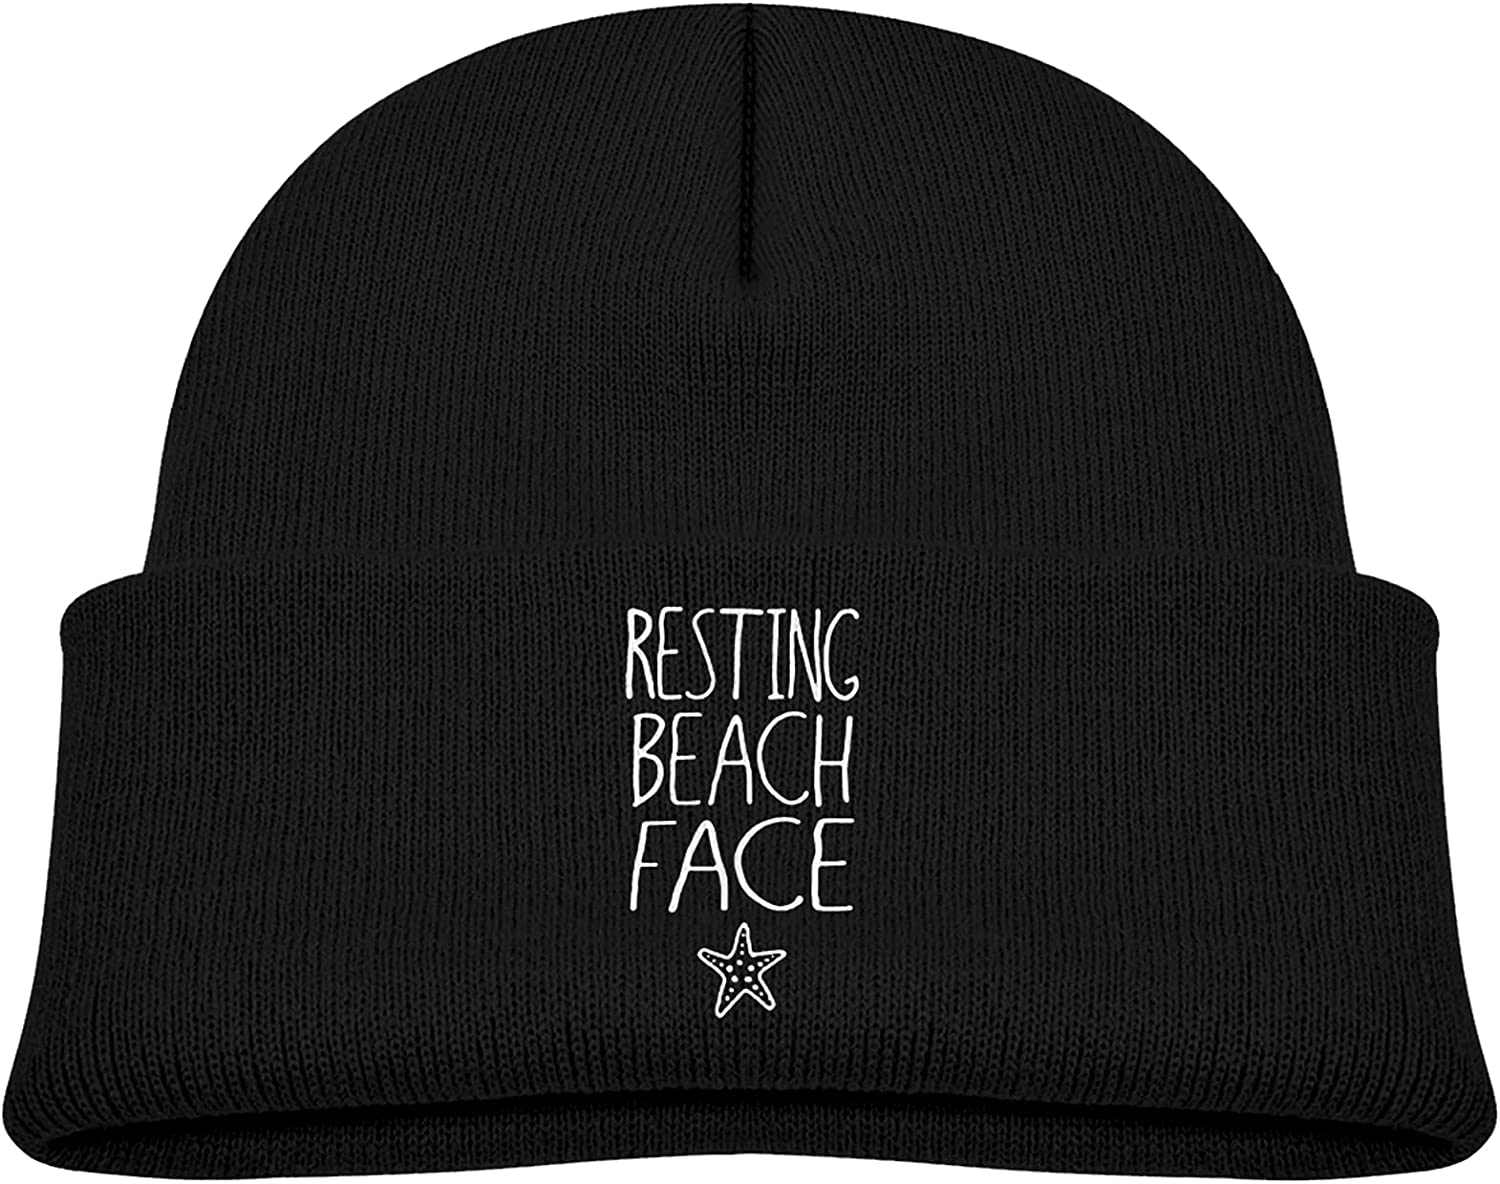 Resting Beach Face Starfish Trendy Skull Beanie Super beauty product restock quality top Hat Knit Max 63% OFF Winter